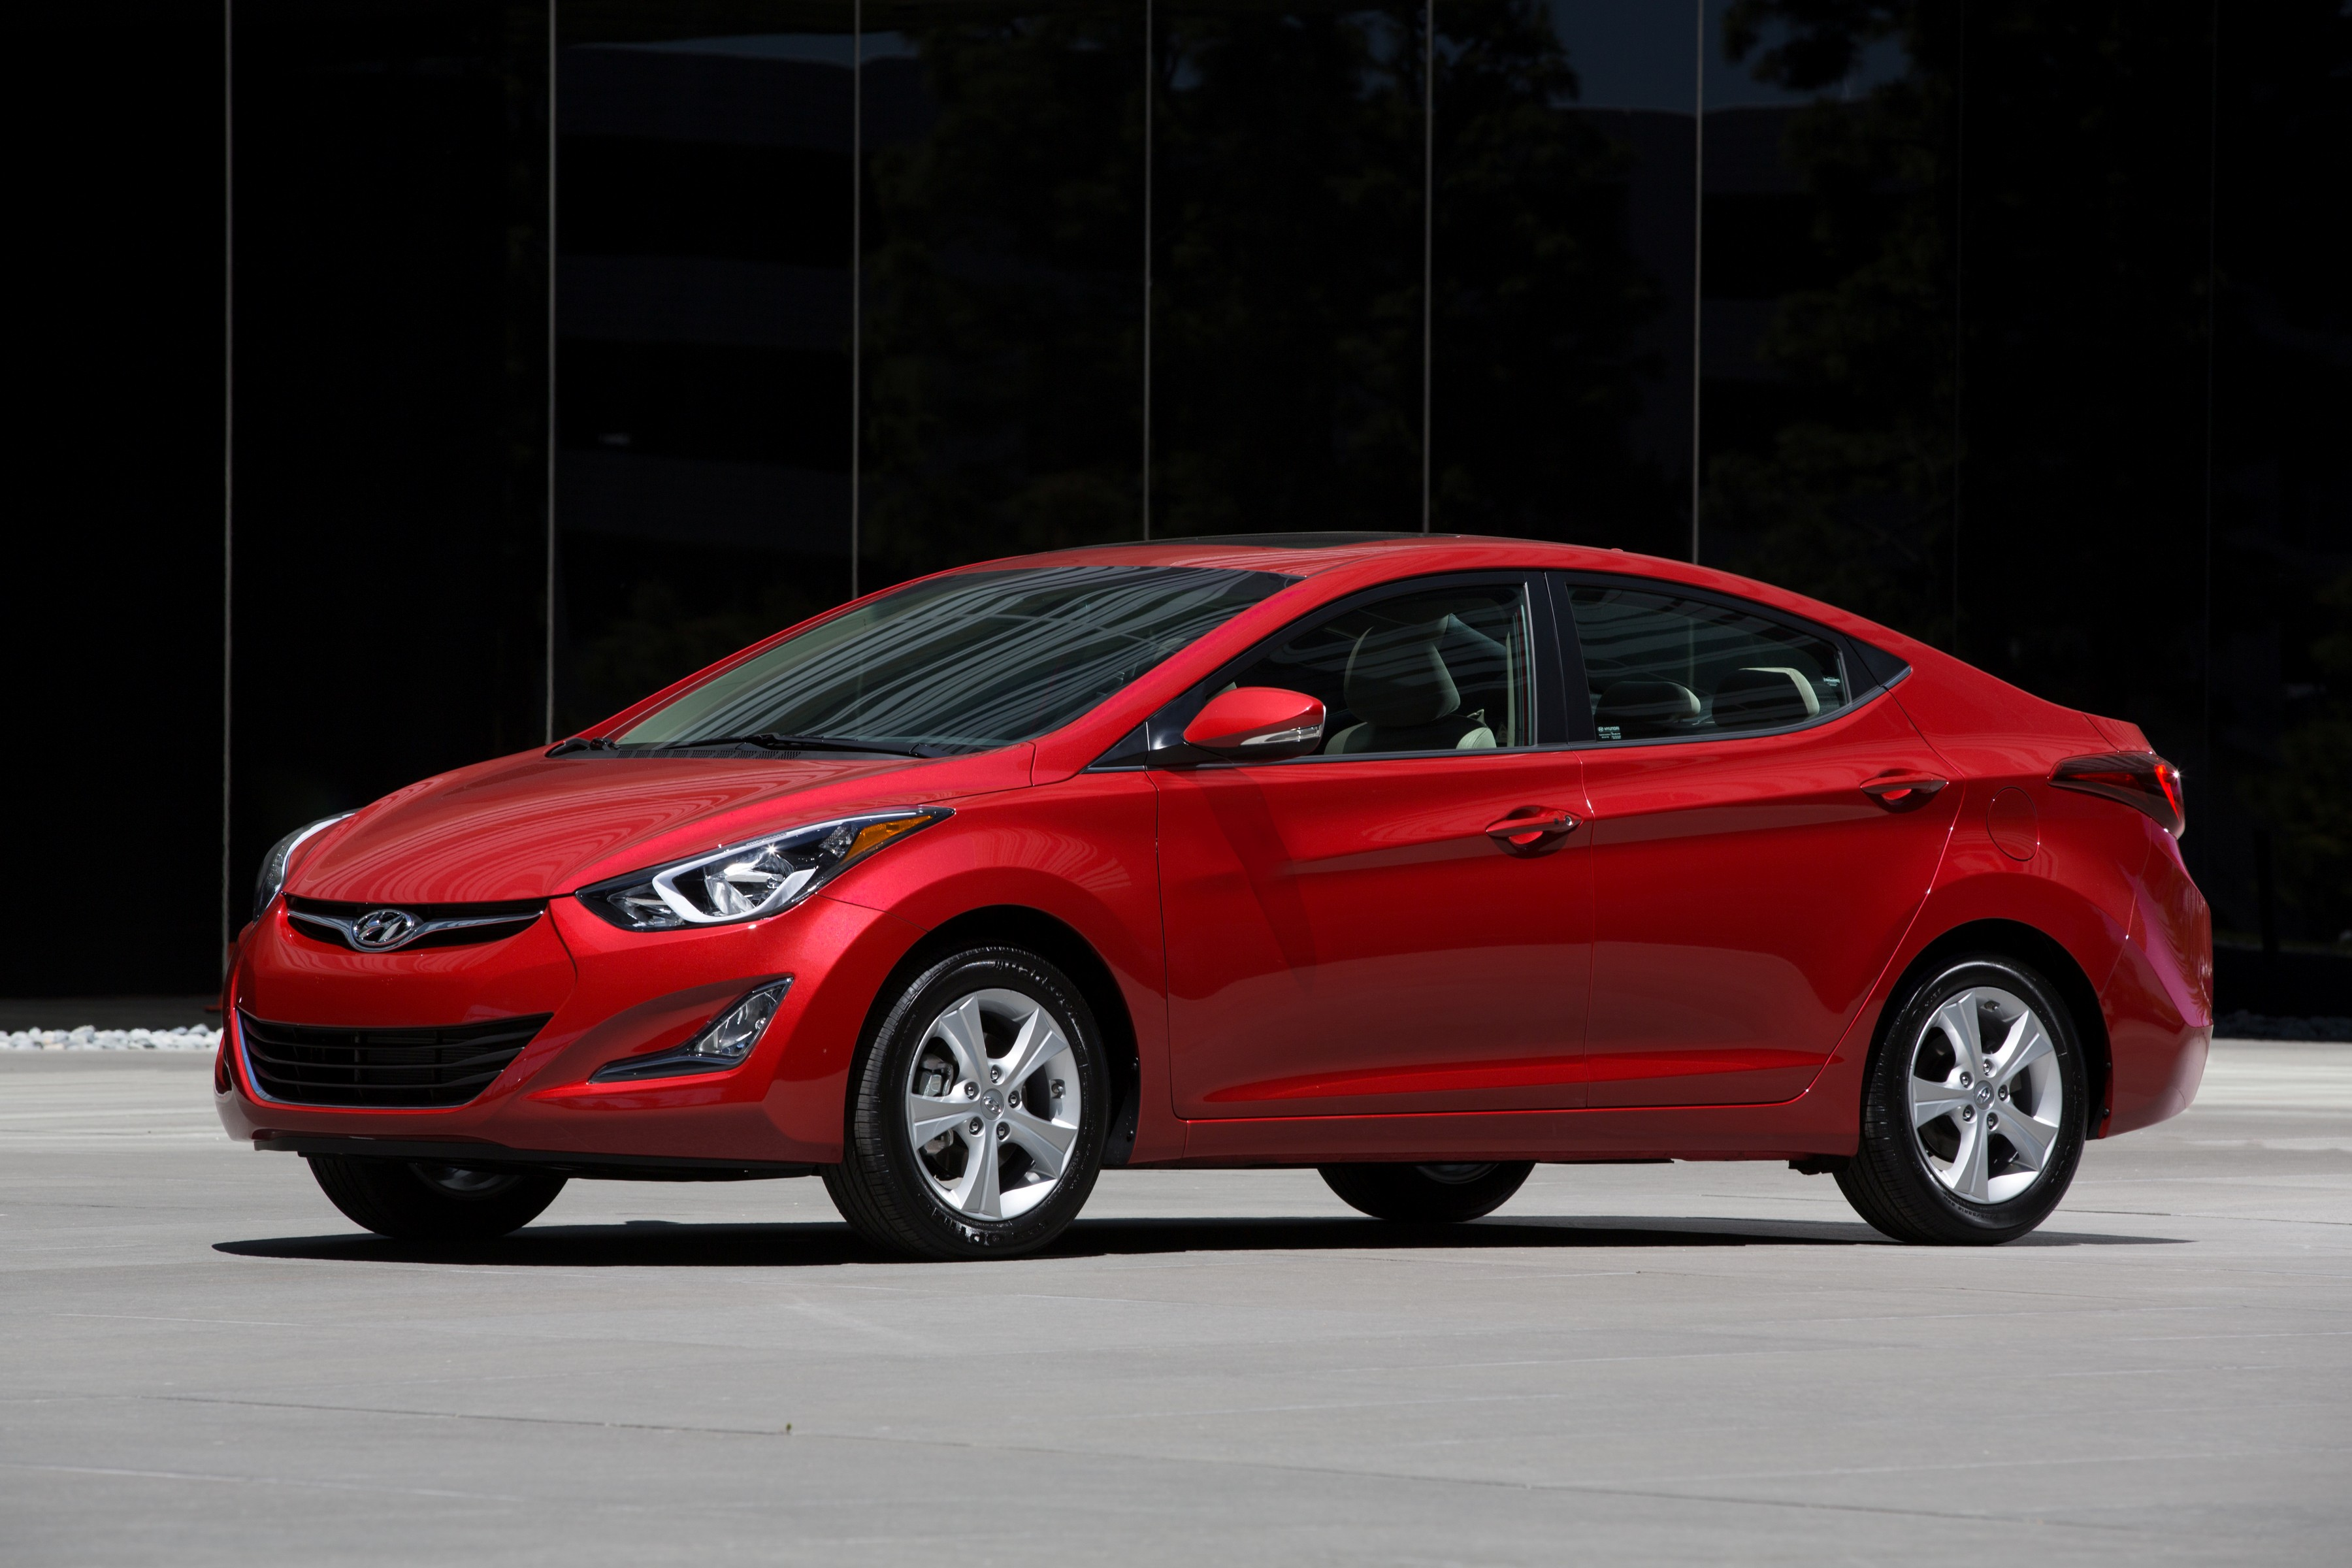 2016 hyundai elantra adds new value edition news. Black Bedroom Furniture Sets. Home Design Ideas